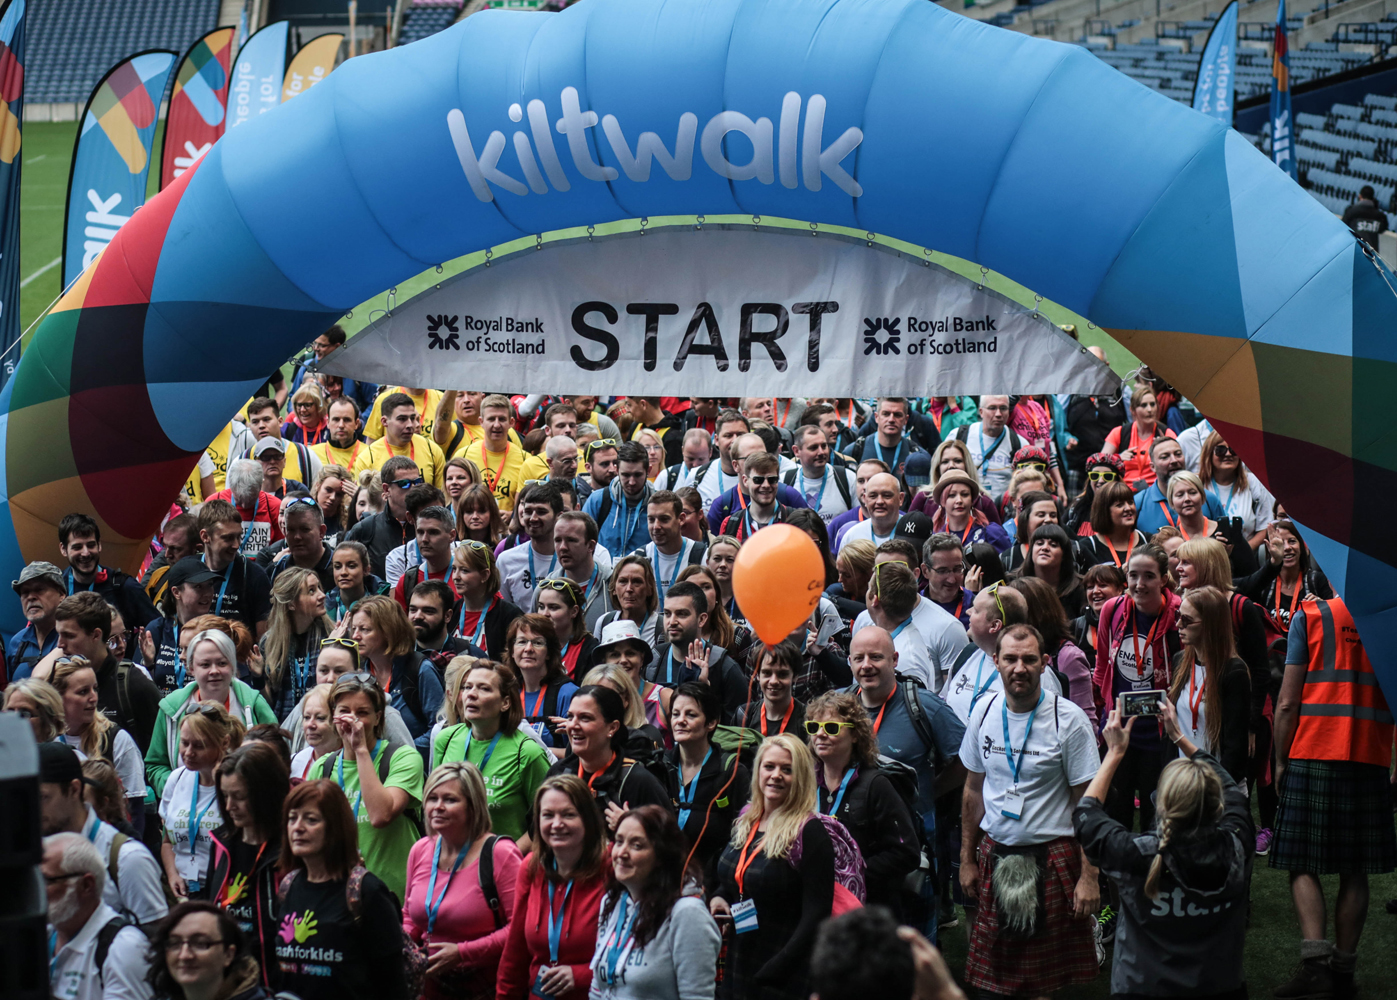 Kiltwalk Crowded Edinburgh Start 1